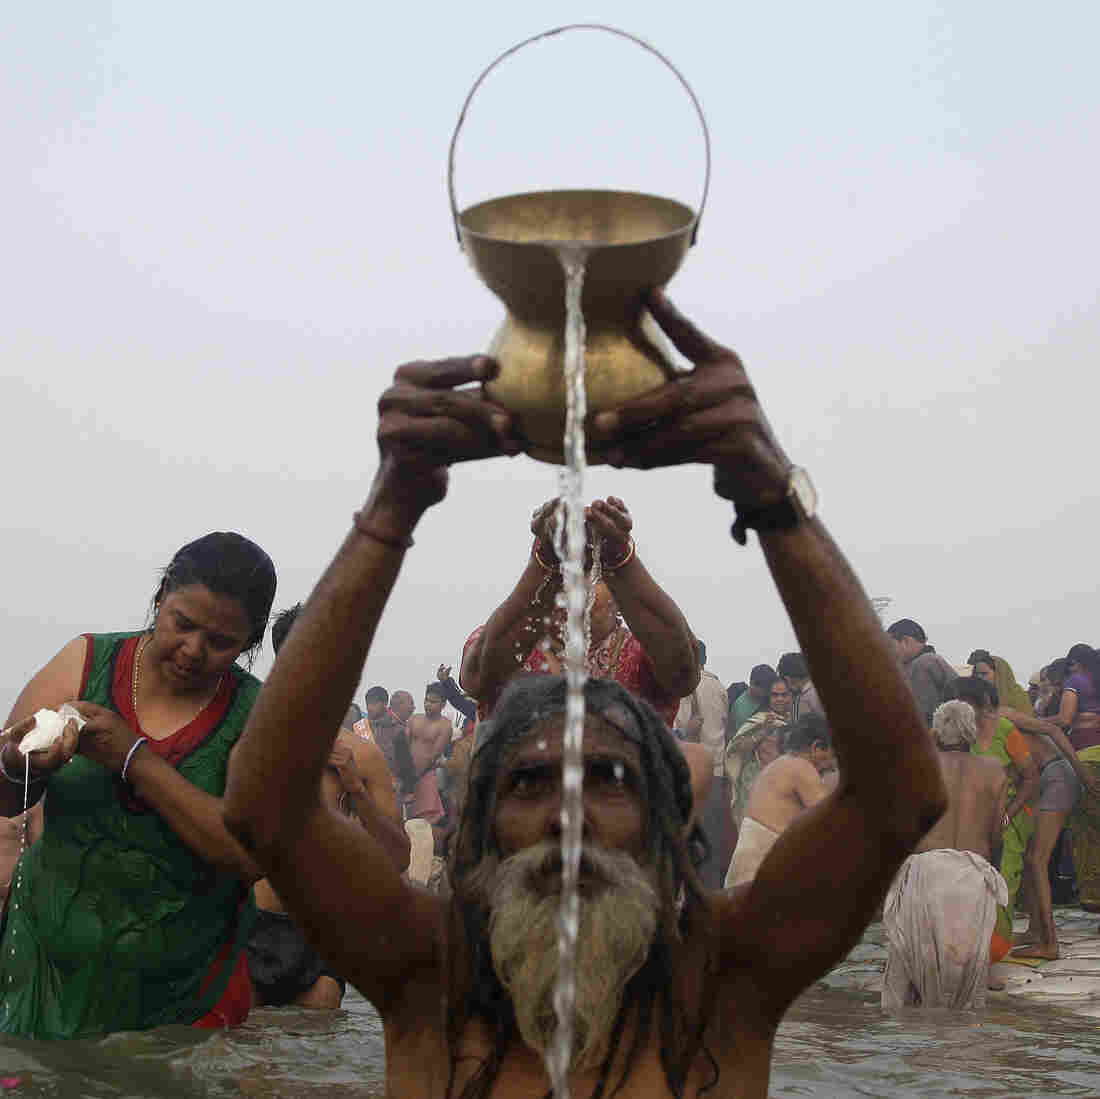 'Biggest Gathering On Earth' Begins In India; Kumbh Mela May Draw 100 Million